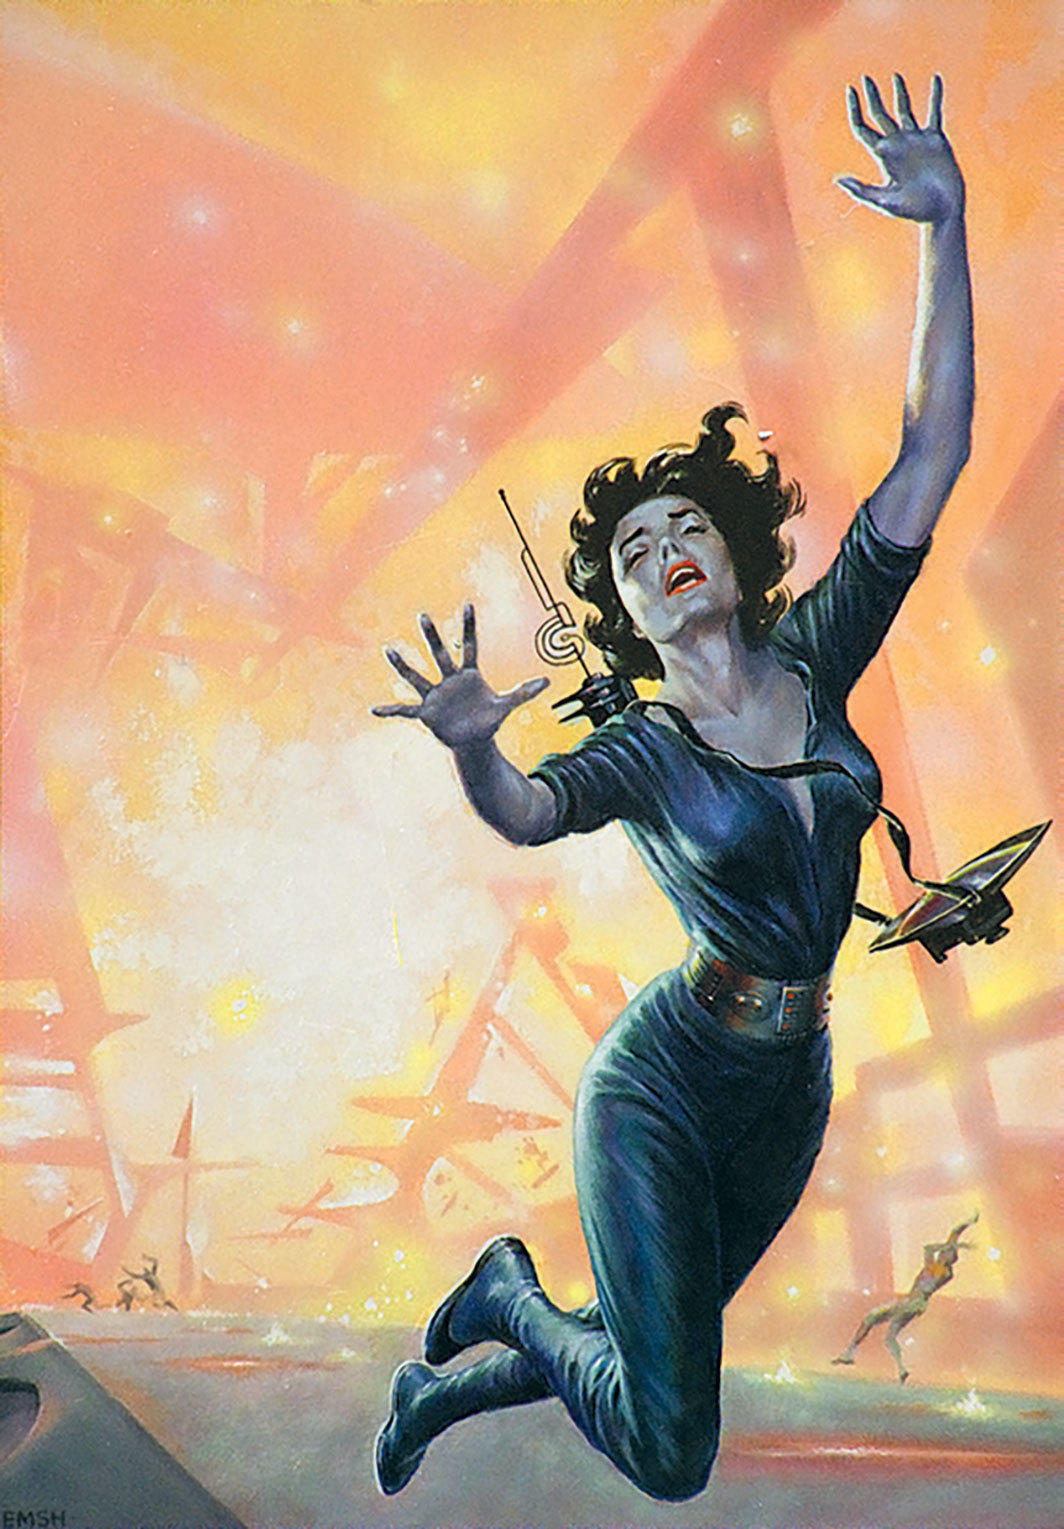 Ed Emshwiller, Disintegration of a Field-Force, cover art for the Magazine of Fantasy and Science Fiction (February 1957). © Estate of Ed Emshwiller/Dream Dance: The Art of Ed Emshwiller (Anthology Editions, 2019).